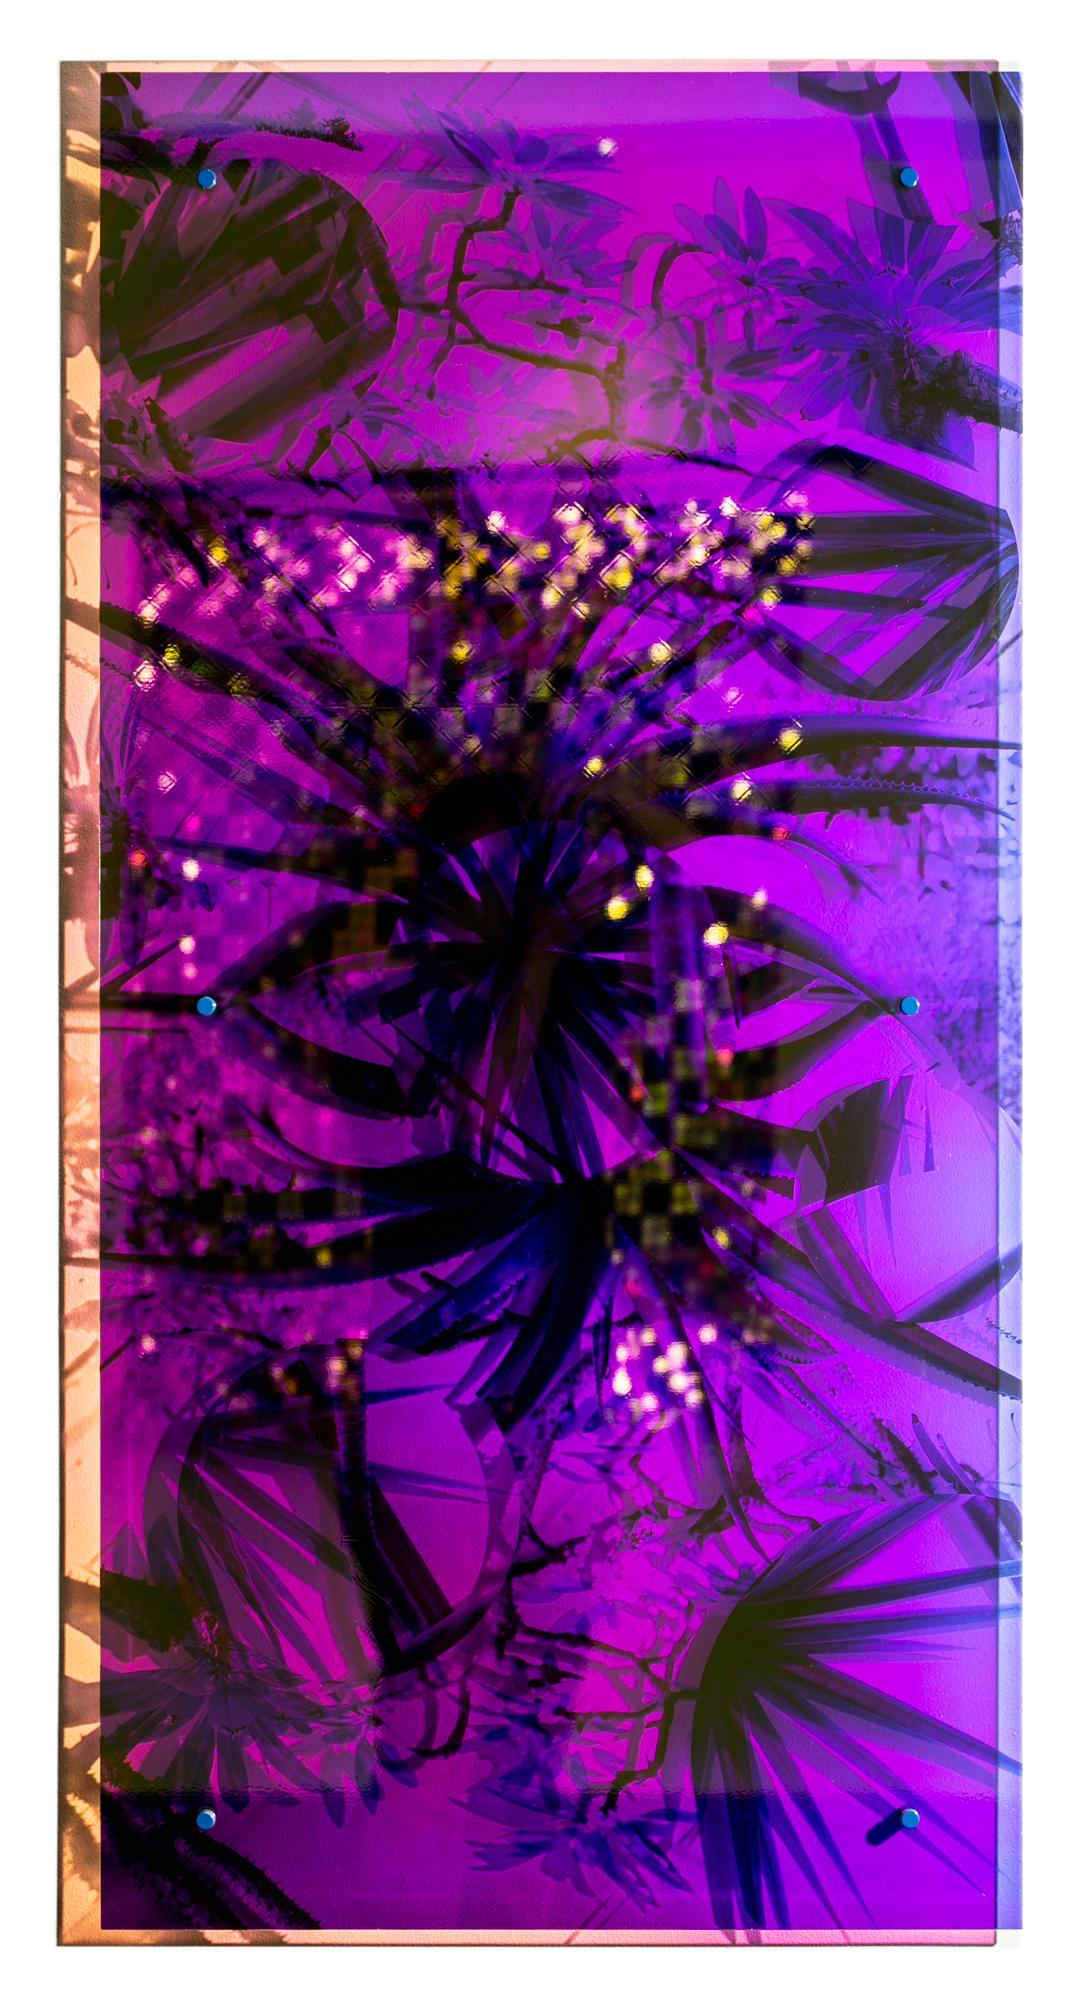 """""""Tree Aloe"""", Holographic, Mirrored, Reflective, Wall-Hanging Colorful Sculpture"""